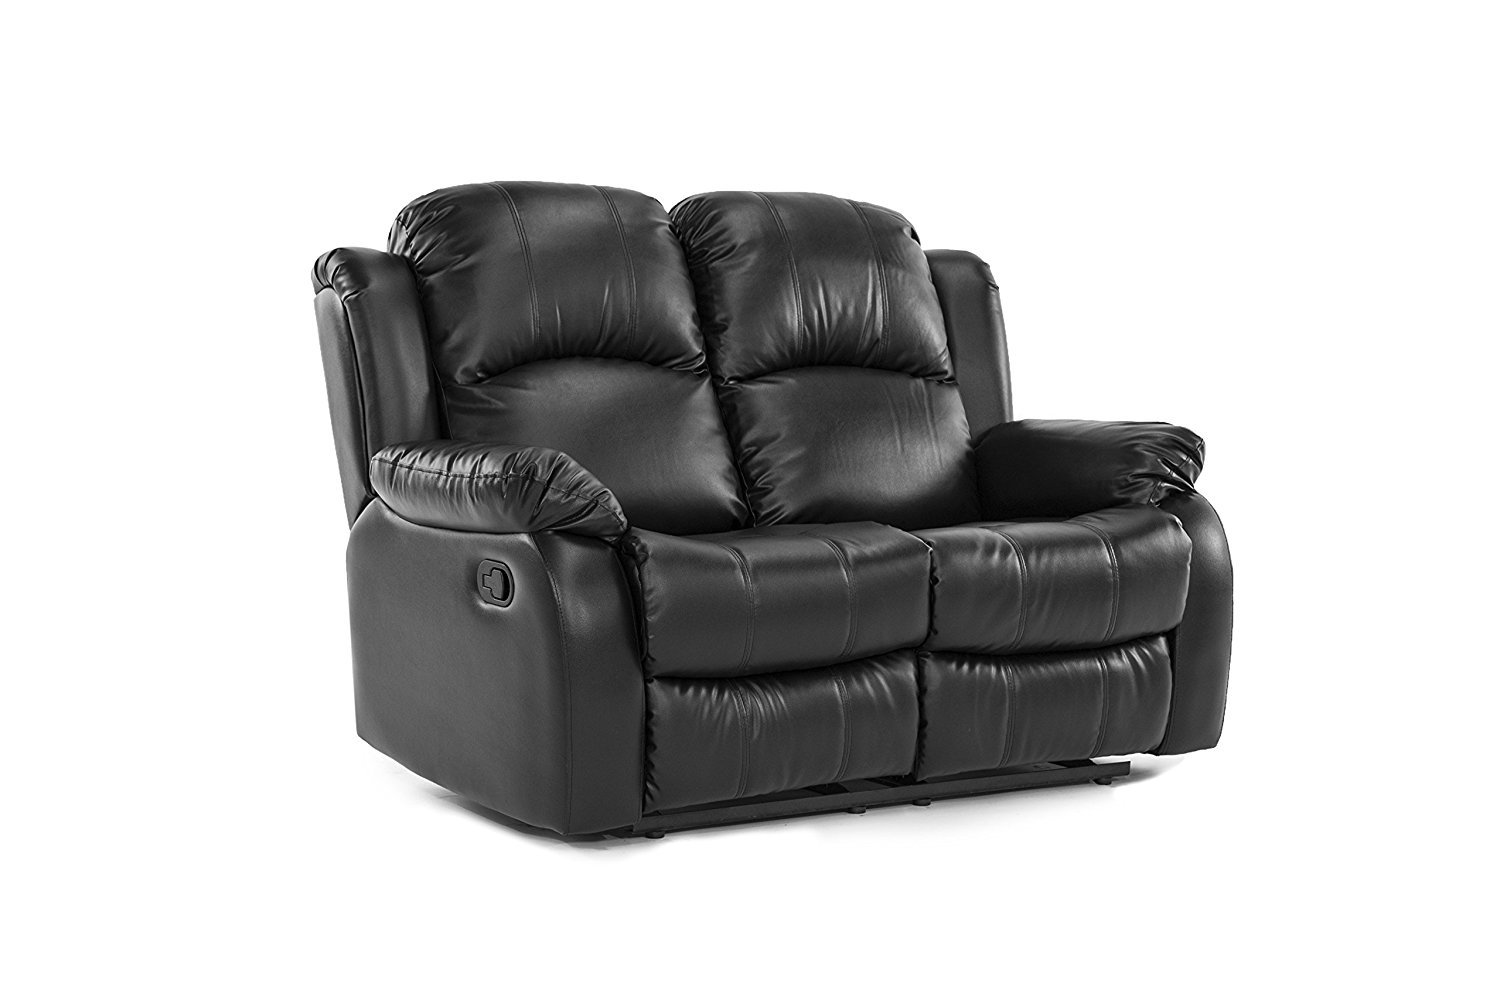 Elegant Double Reclining Loveseat Bonded Leather Living Room Recliner Black Discount